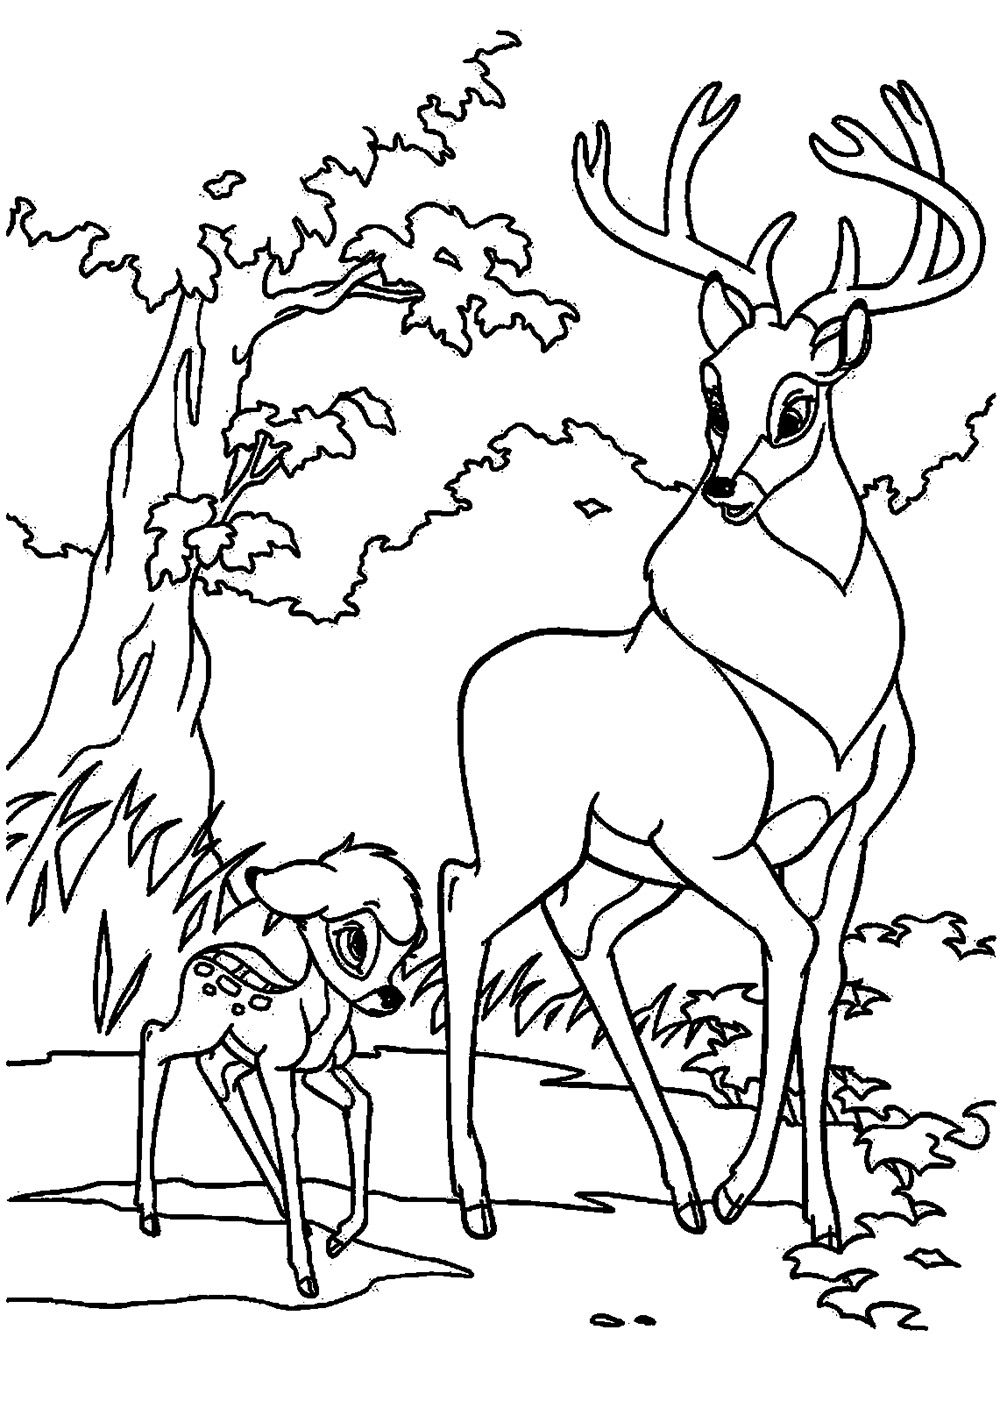 Bambi Uns Both With The Great Prince The Forest